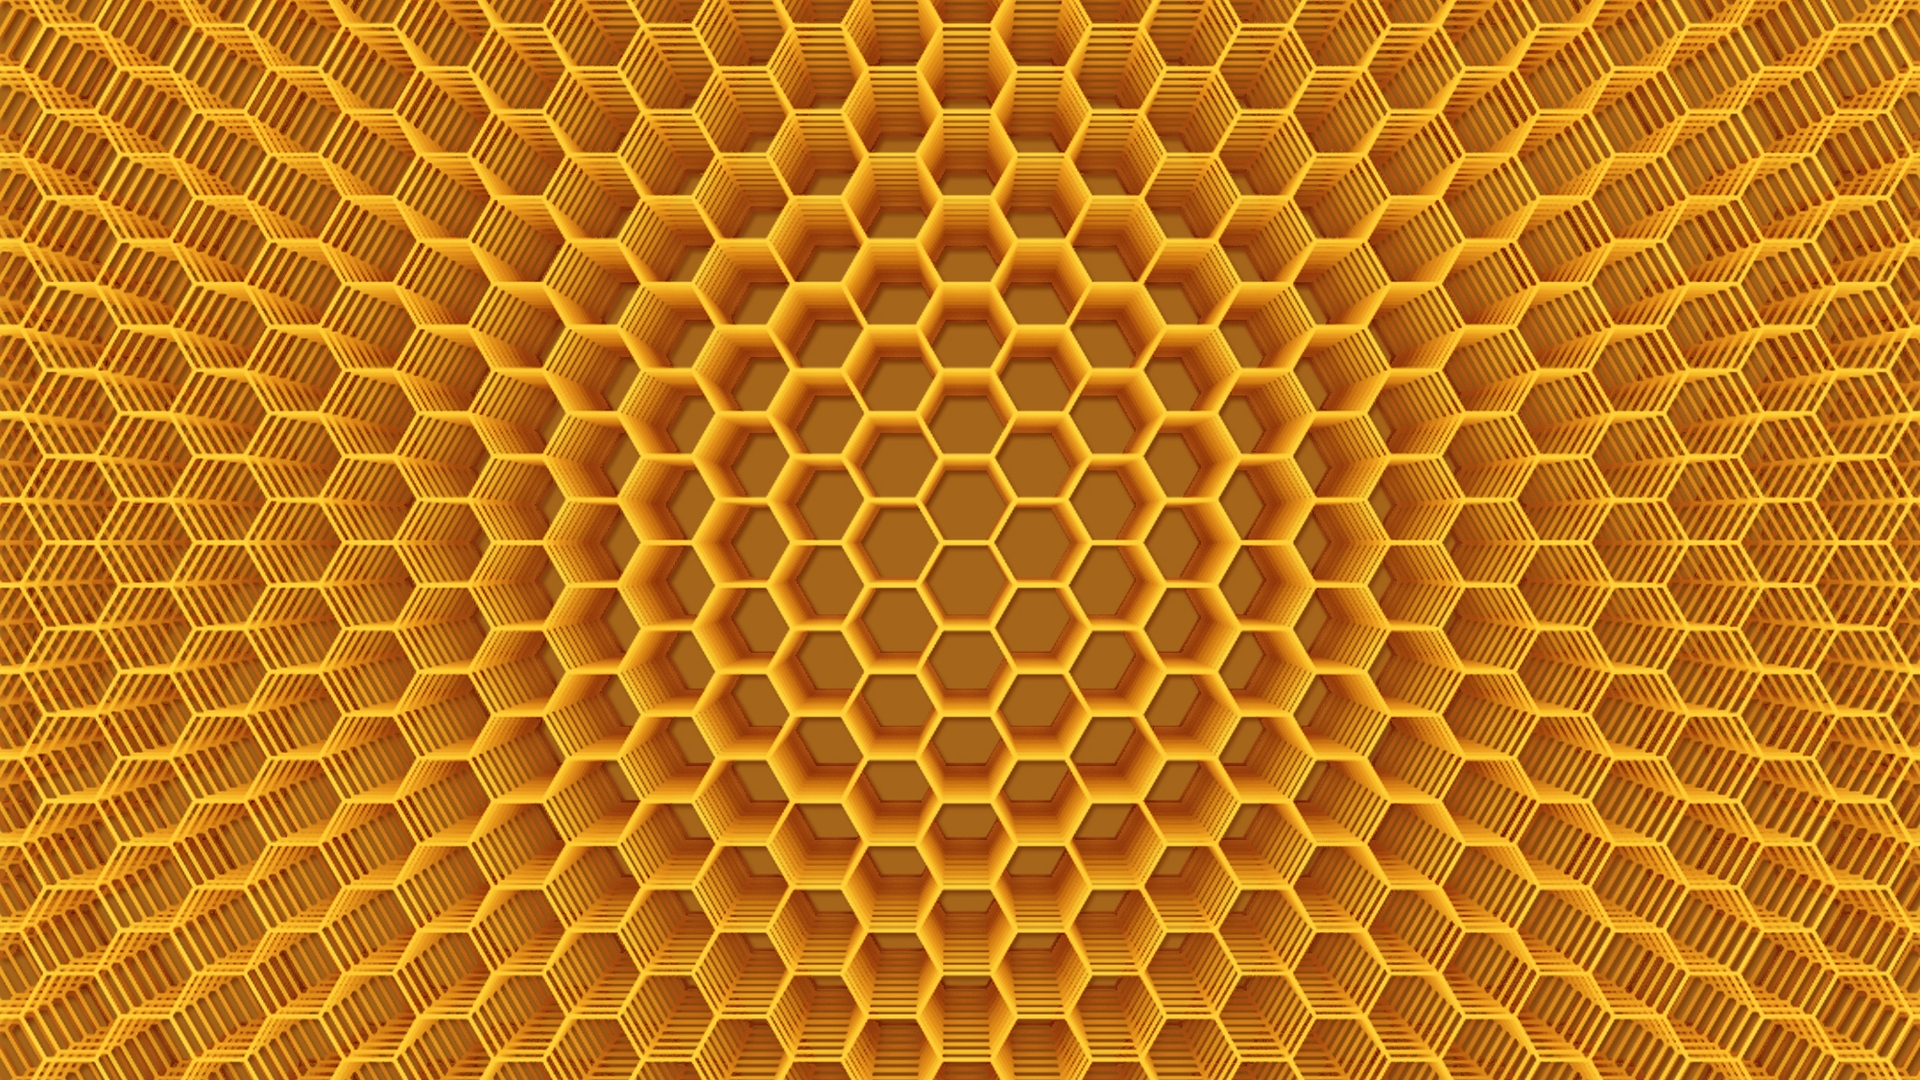 Abstract Honeycomb Structure for 1920 x 1080 HDTV 1080p resolution